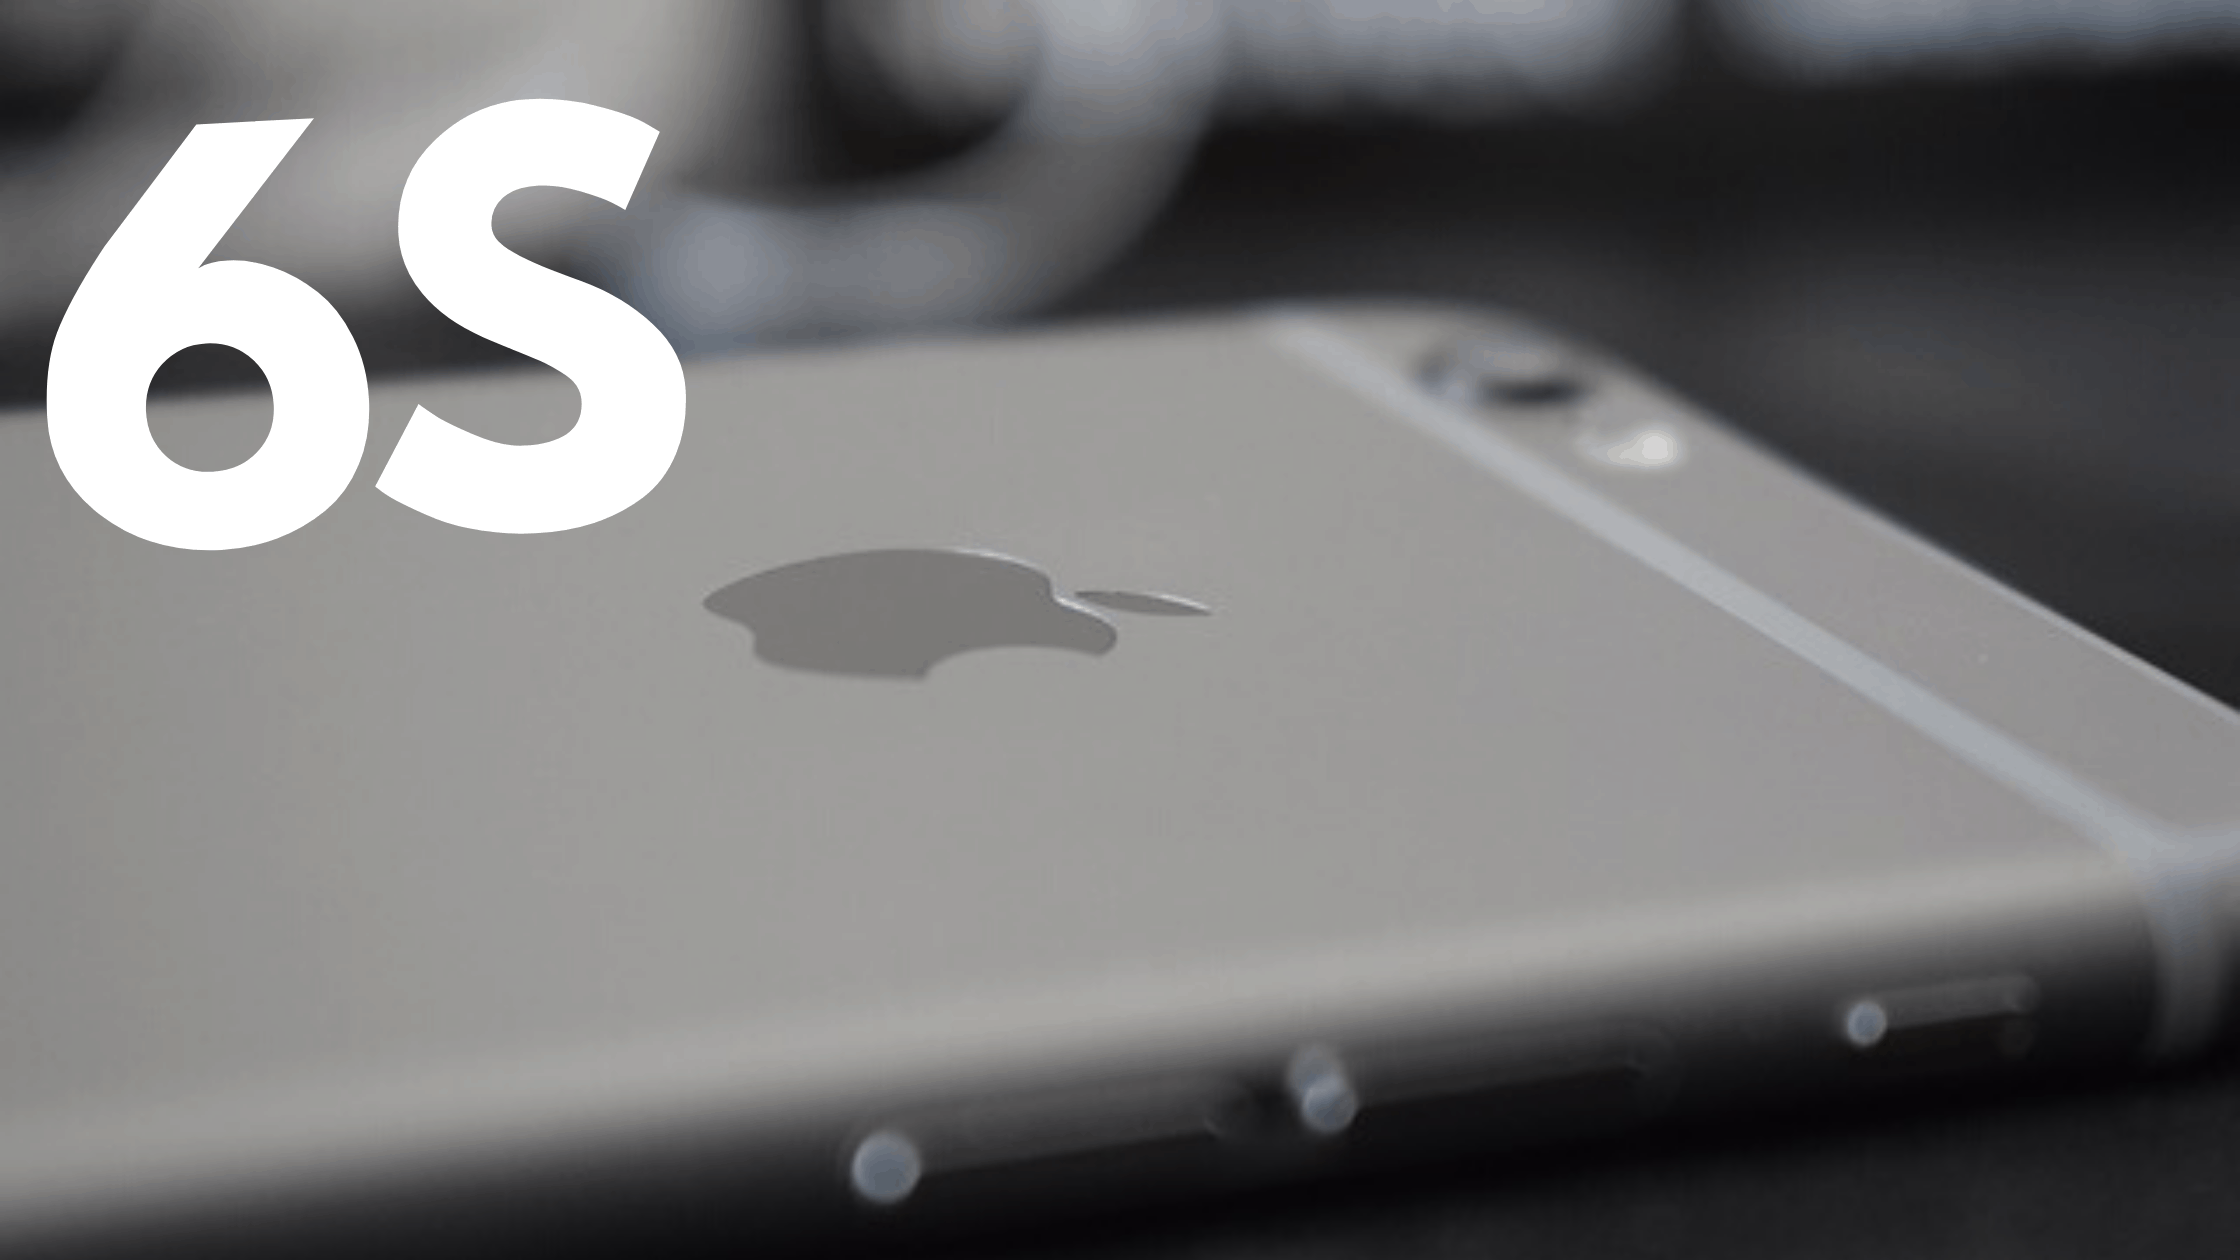 iPhone 6S Better than iPhone 6 Here's Why